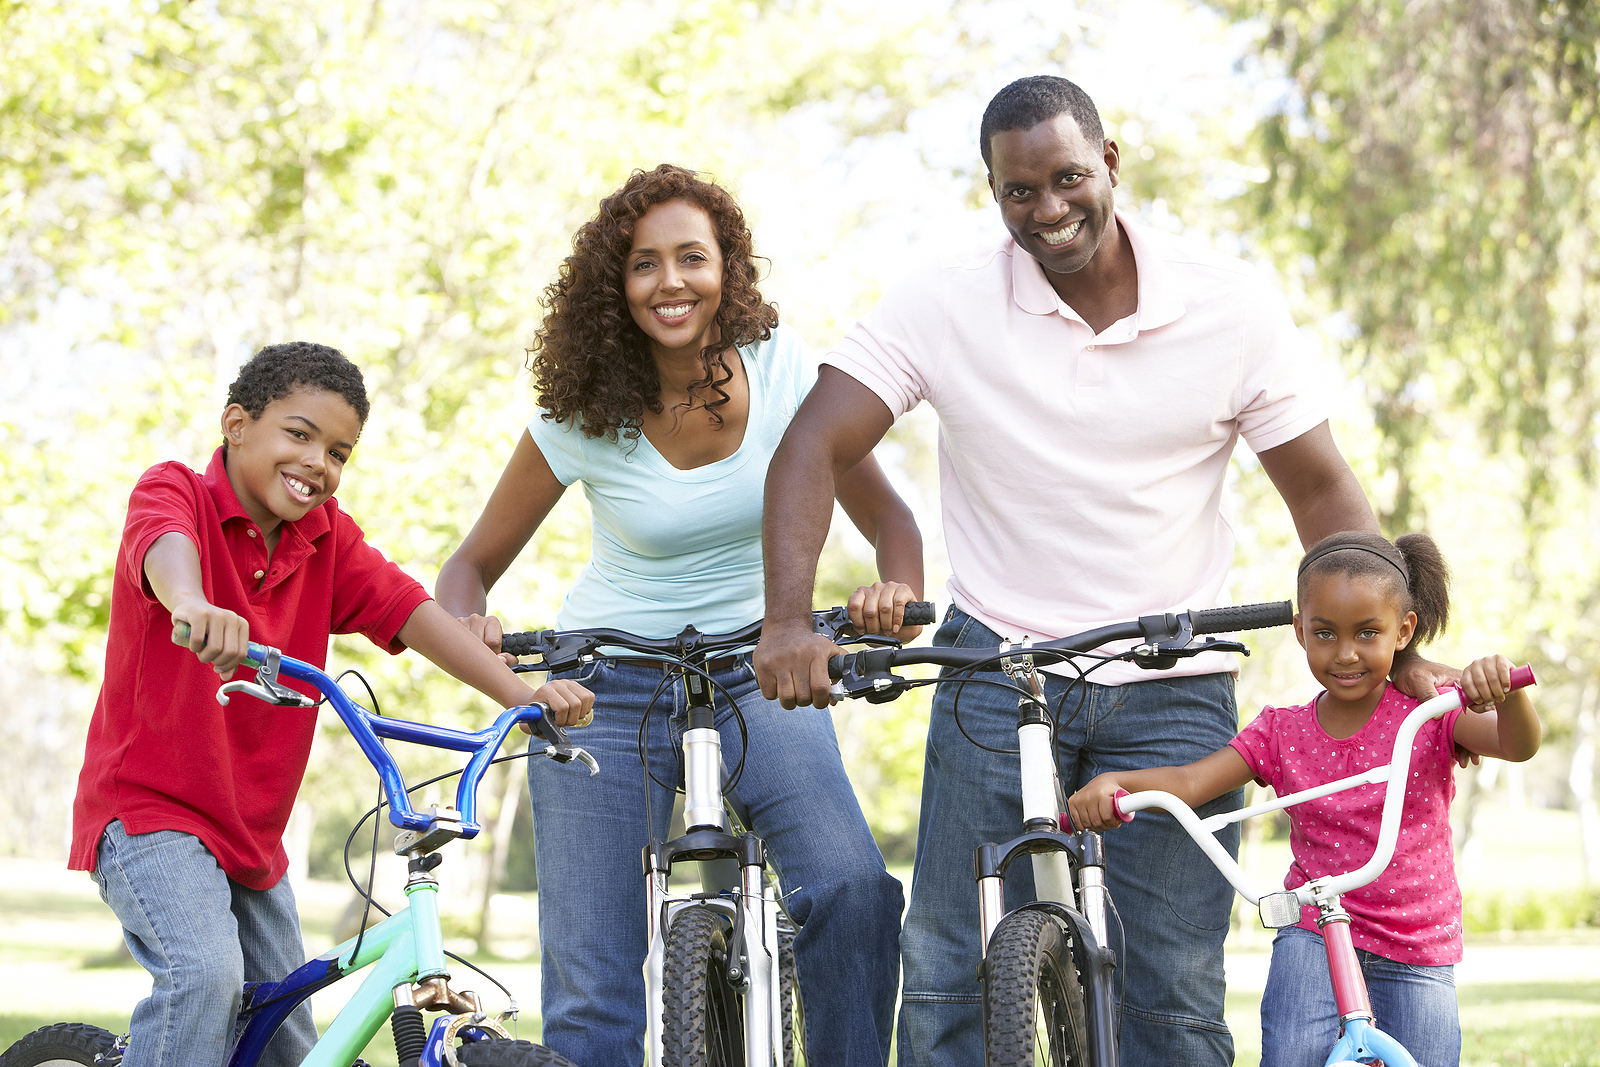 bigstock-Young-Family-Riding-Bikes-In-P-13909514